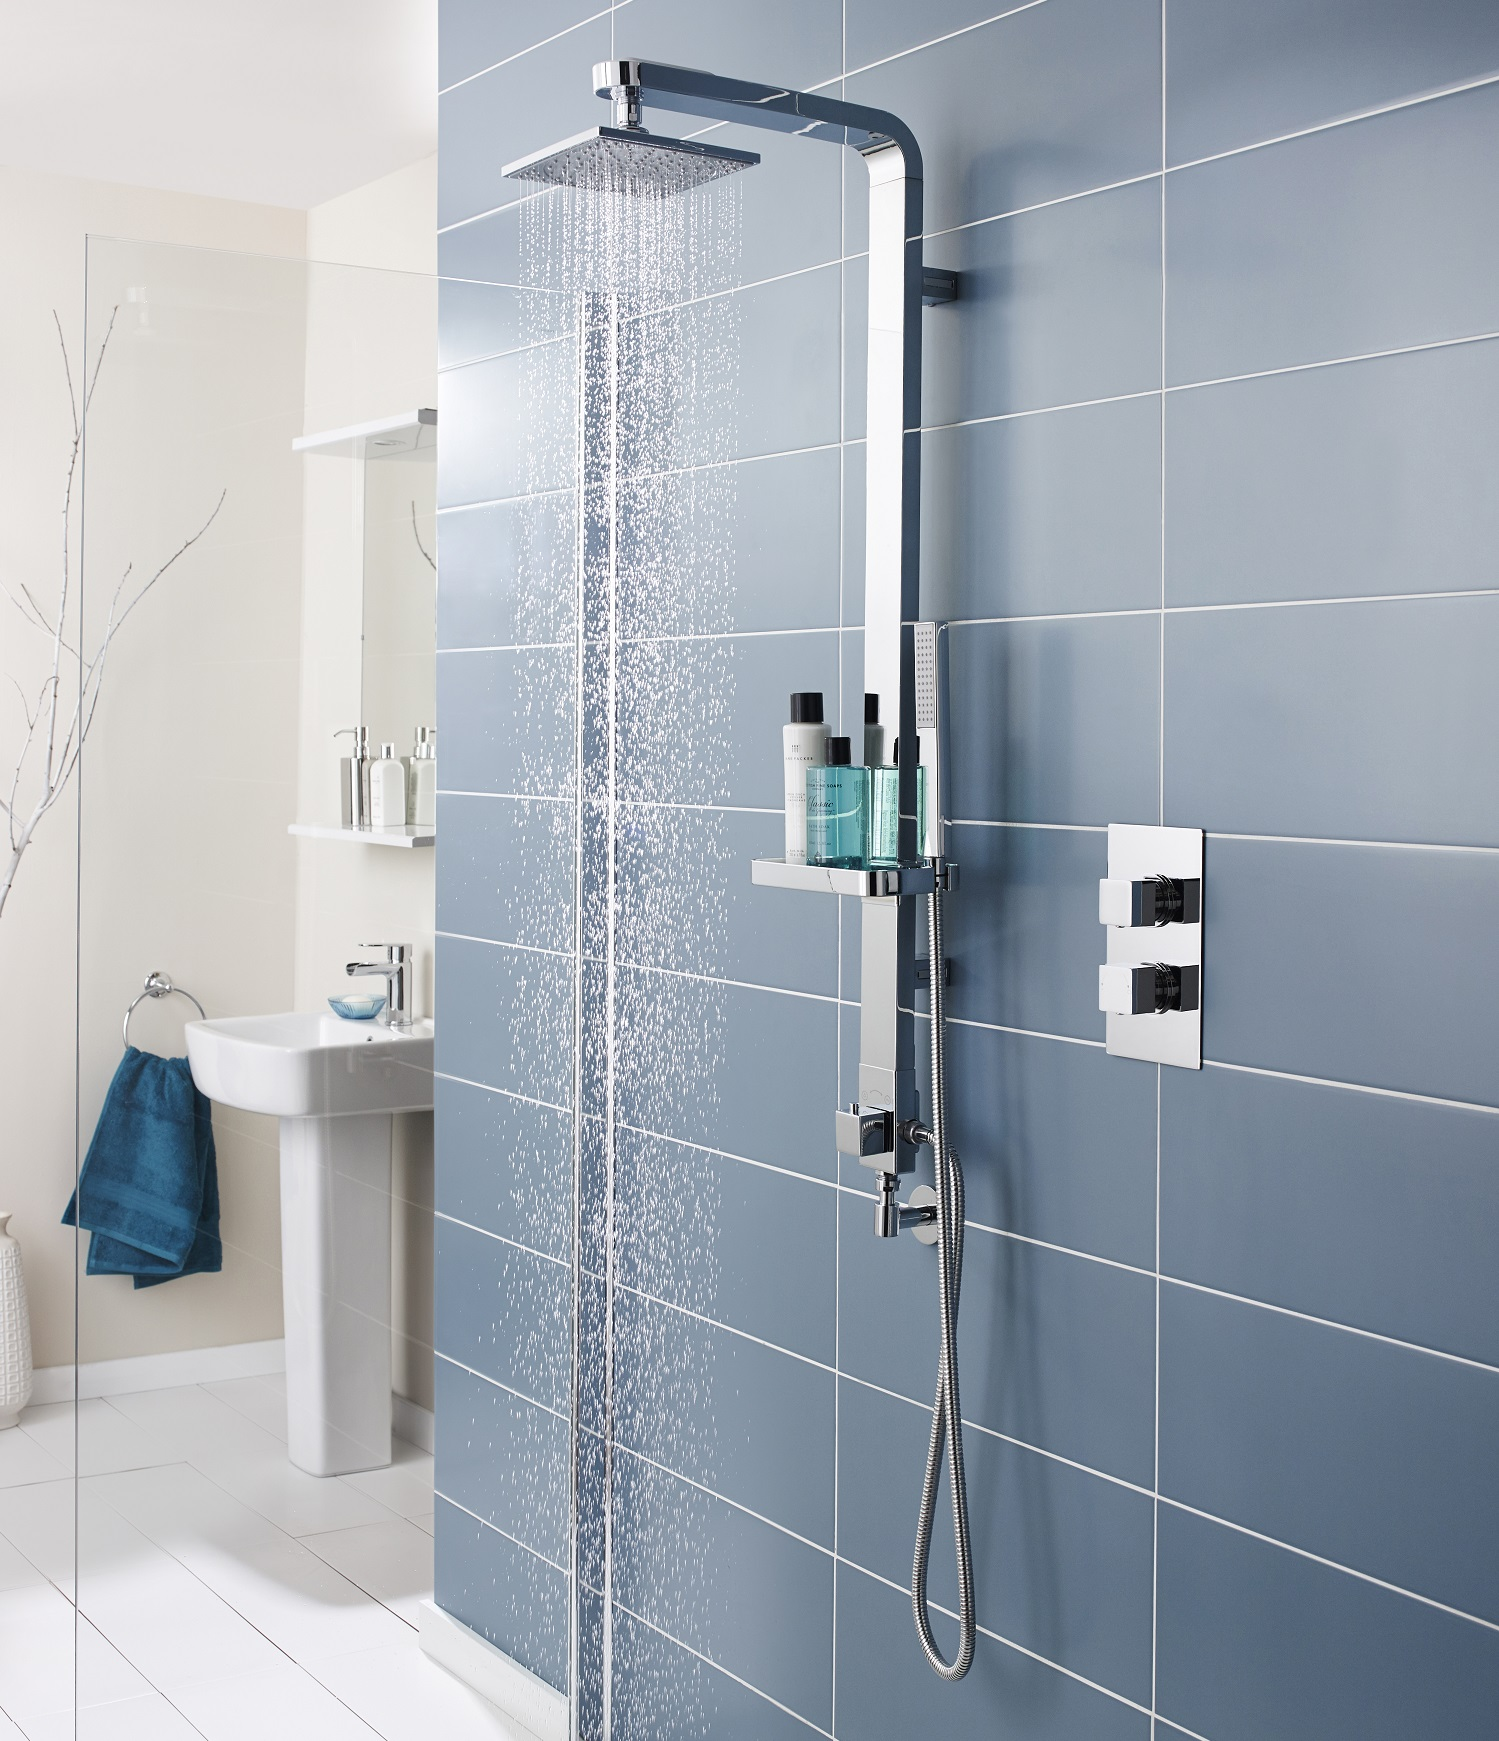 How to regrout a shower wall step by step guide modern shower against a blue tiled wall ppazfo